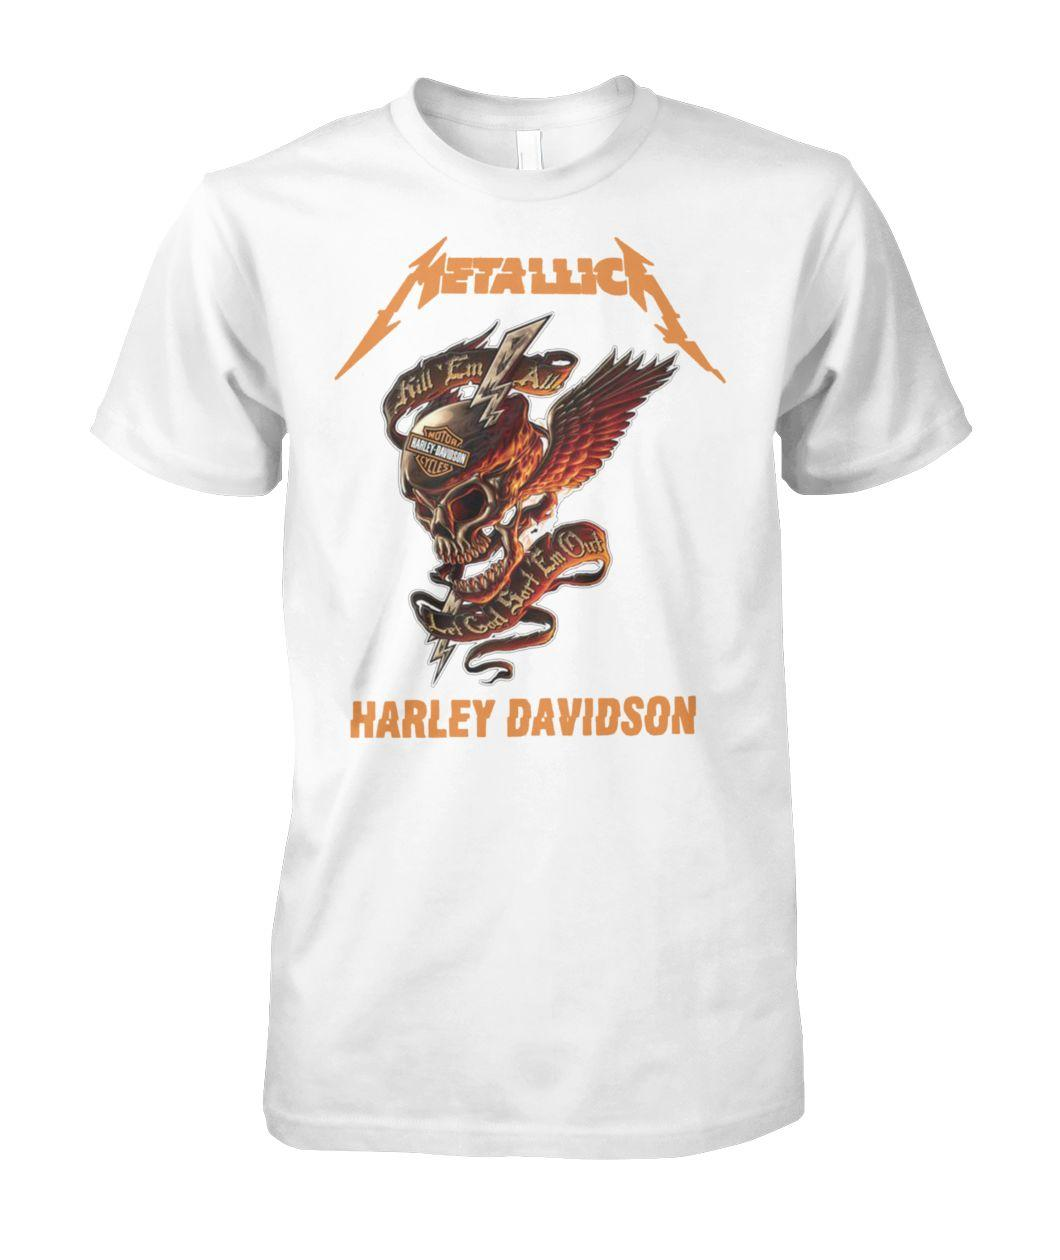 Metallica harley davidson kill em all unisex cotton tee